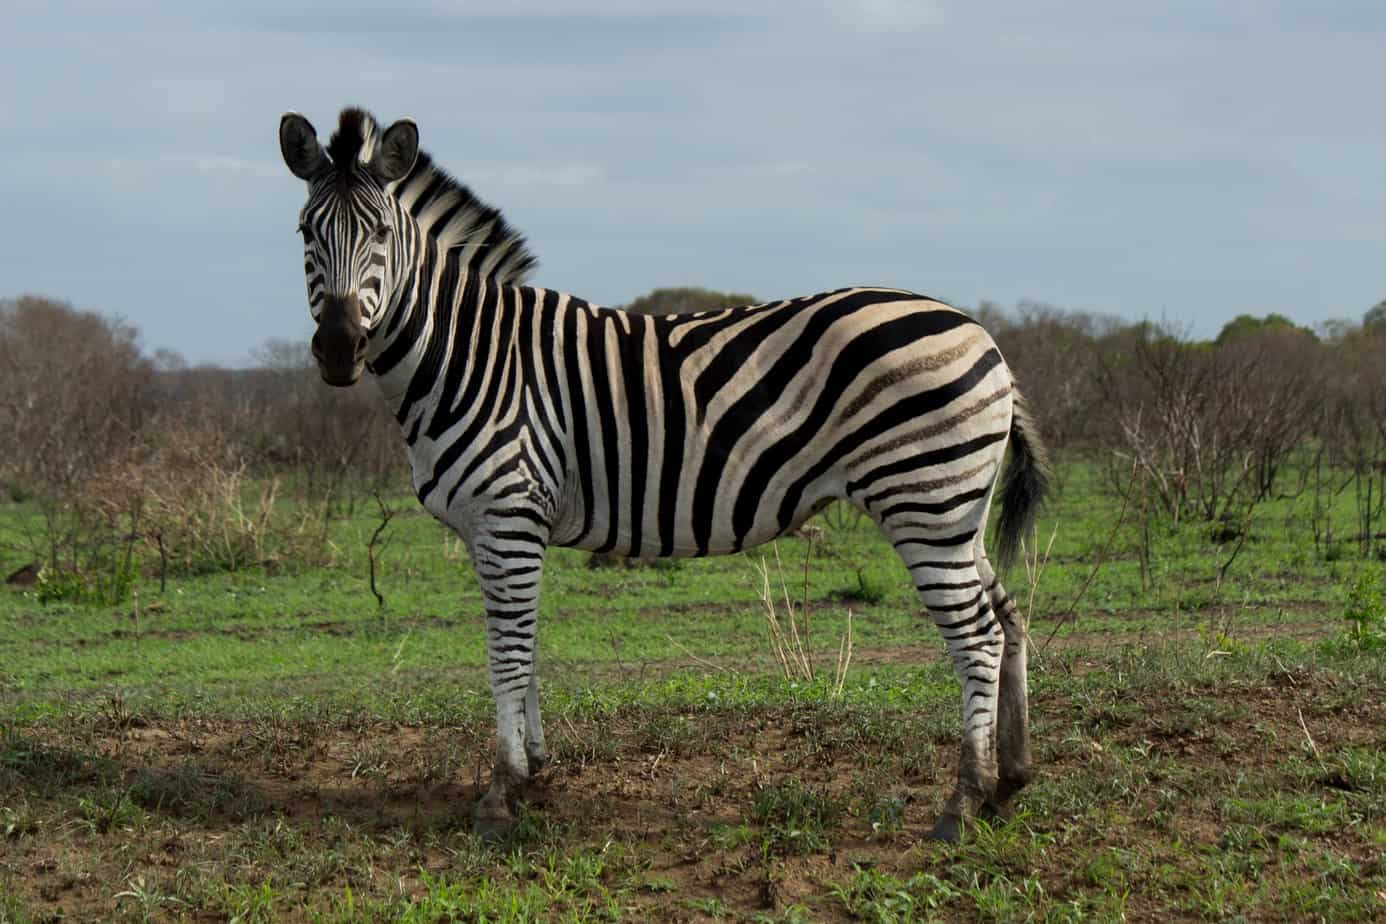 Plains Zebra @ Munyawana Game Reserve. Photo: Håvard Rosenlund